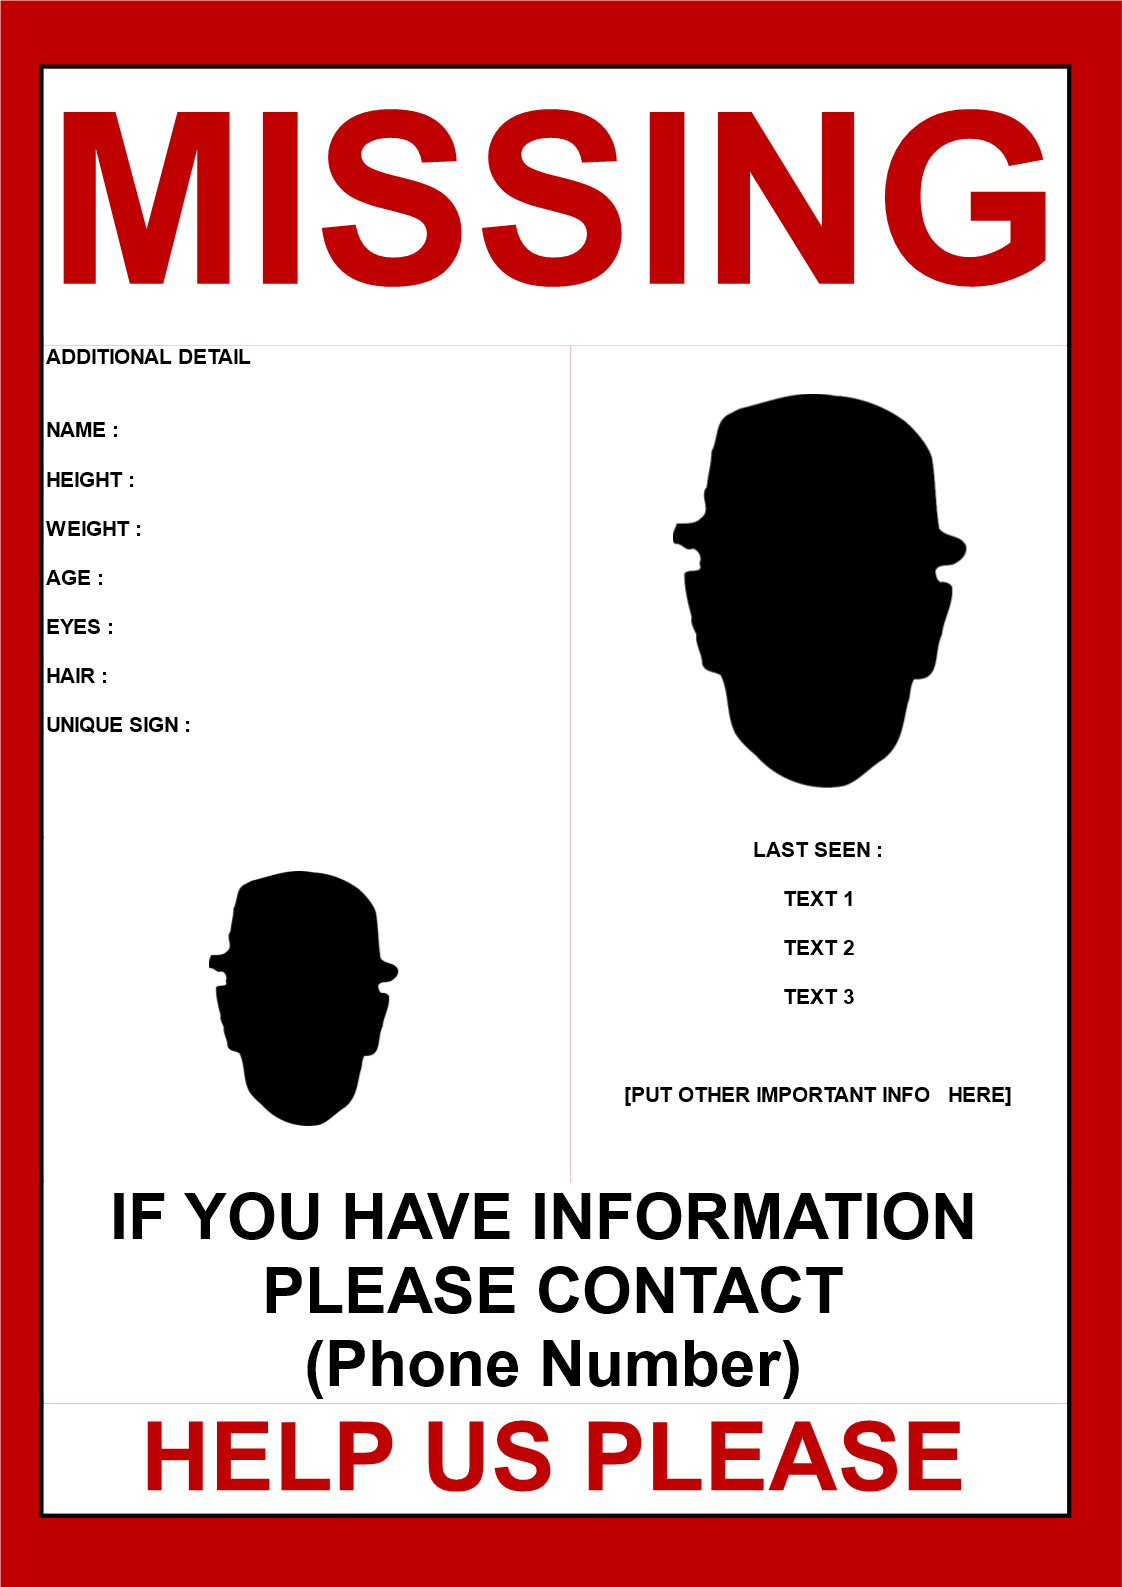 Missing Person Poster Template 2 Images